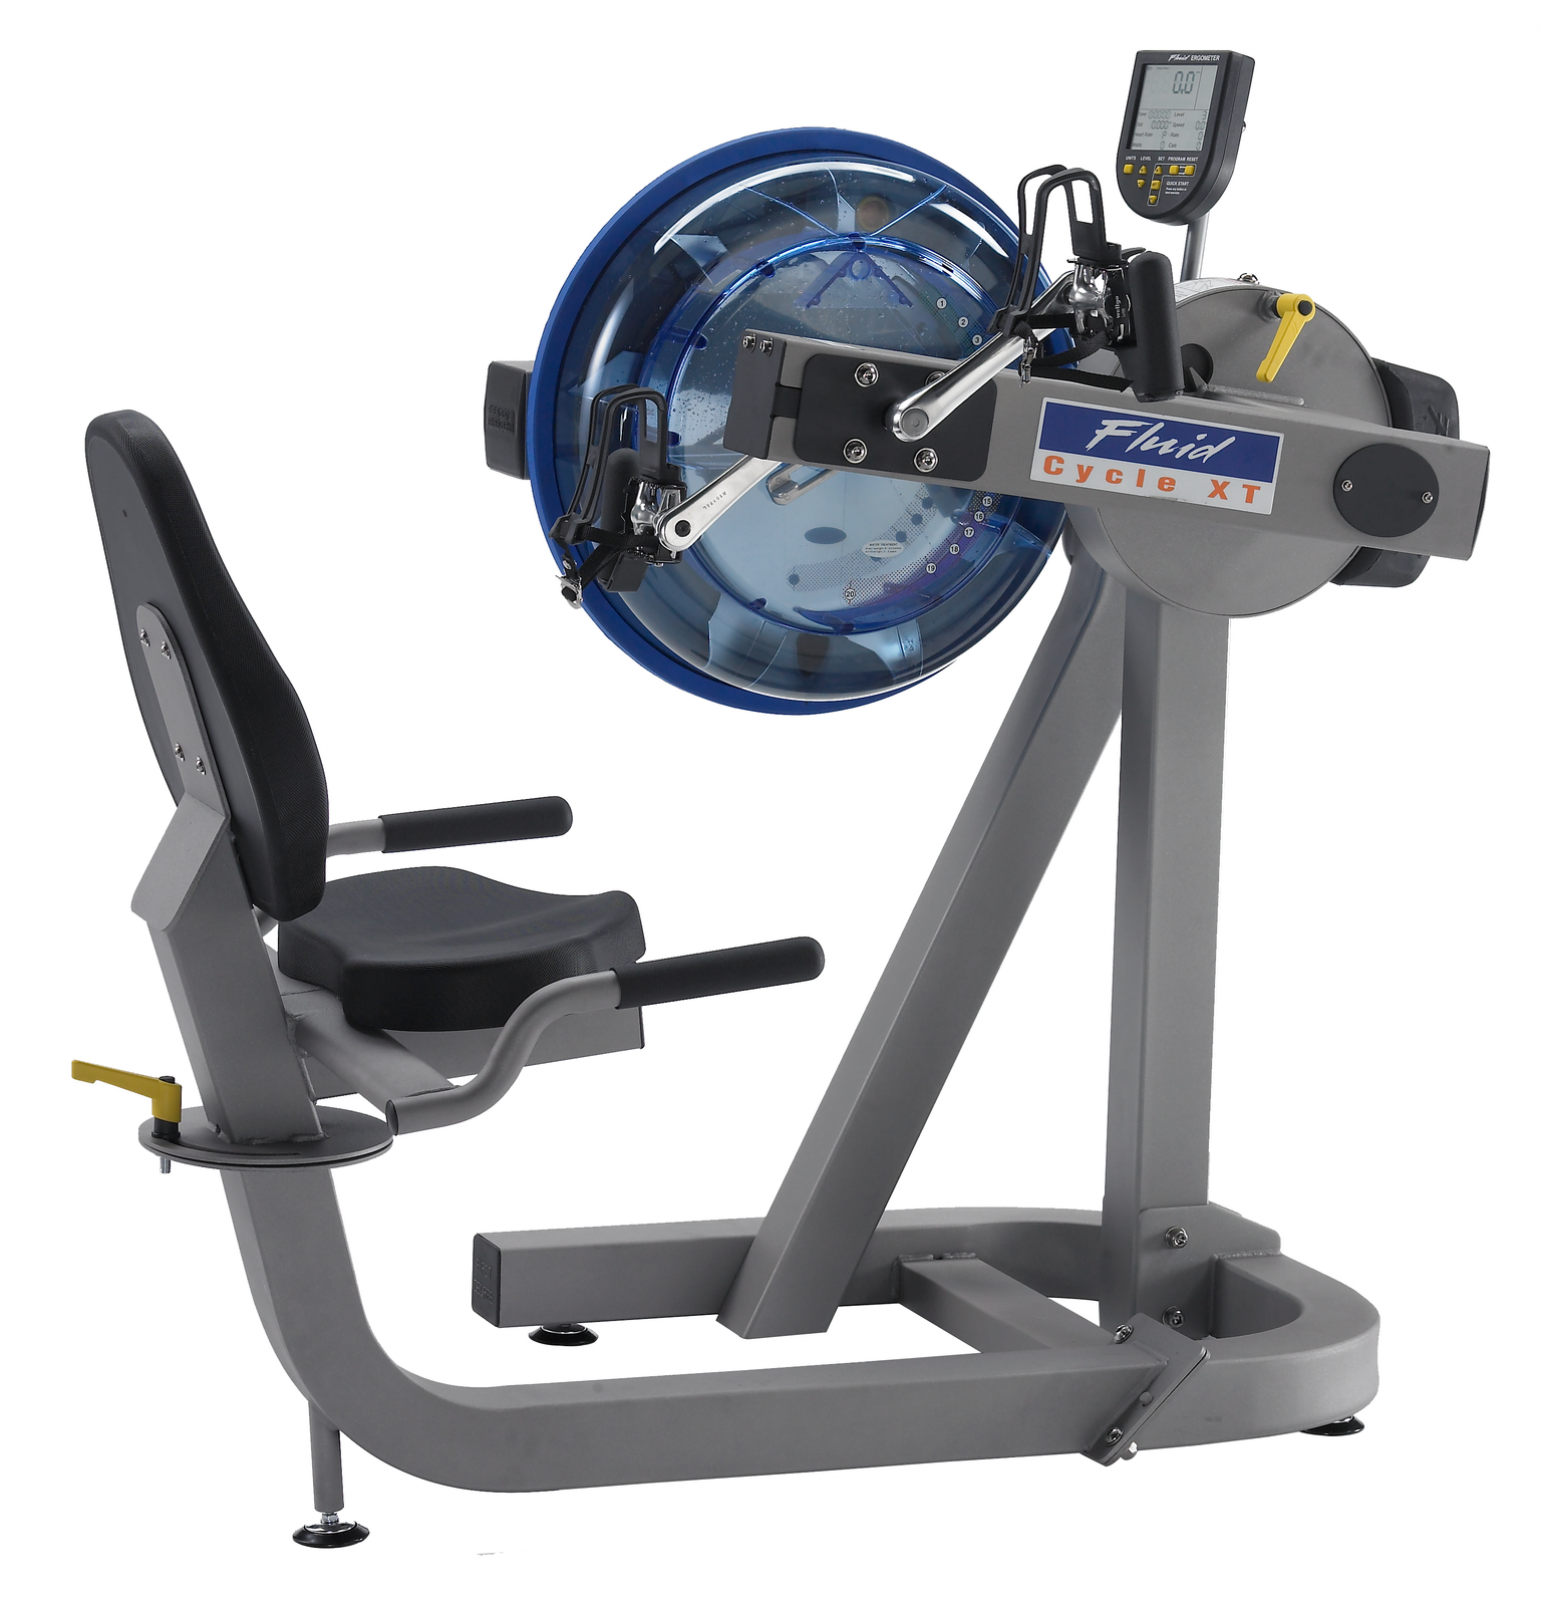 First degree fitness v lo semi allong fluid cycle xt e720 acheter bon prix - Velo allonge fitness ...